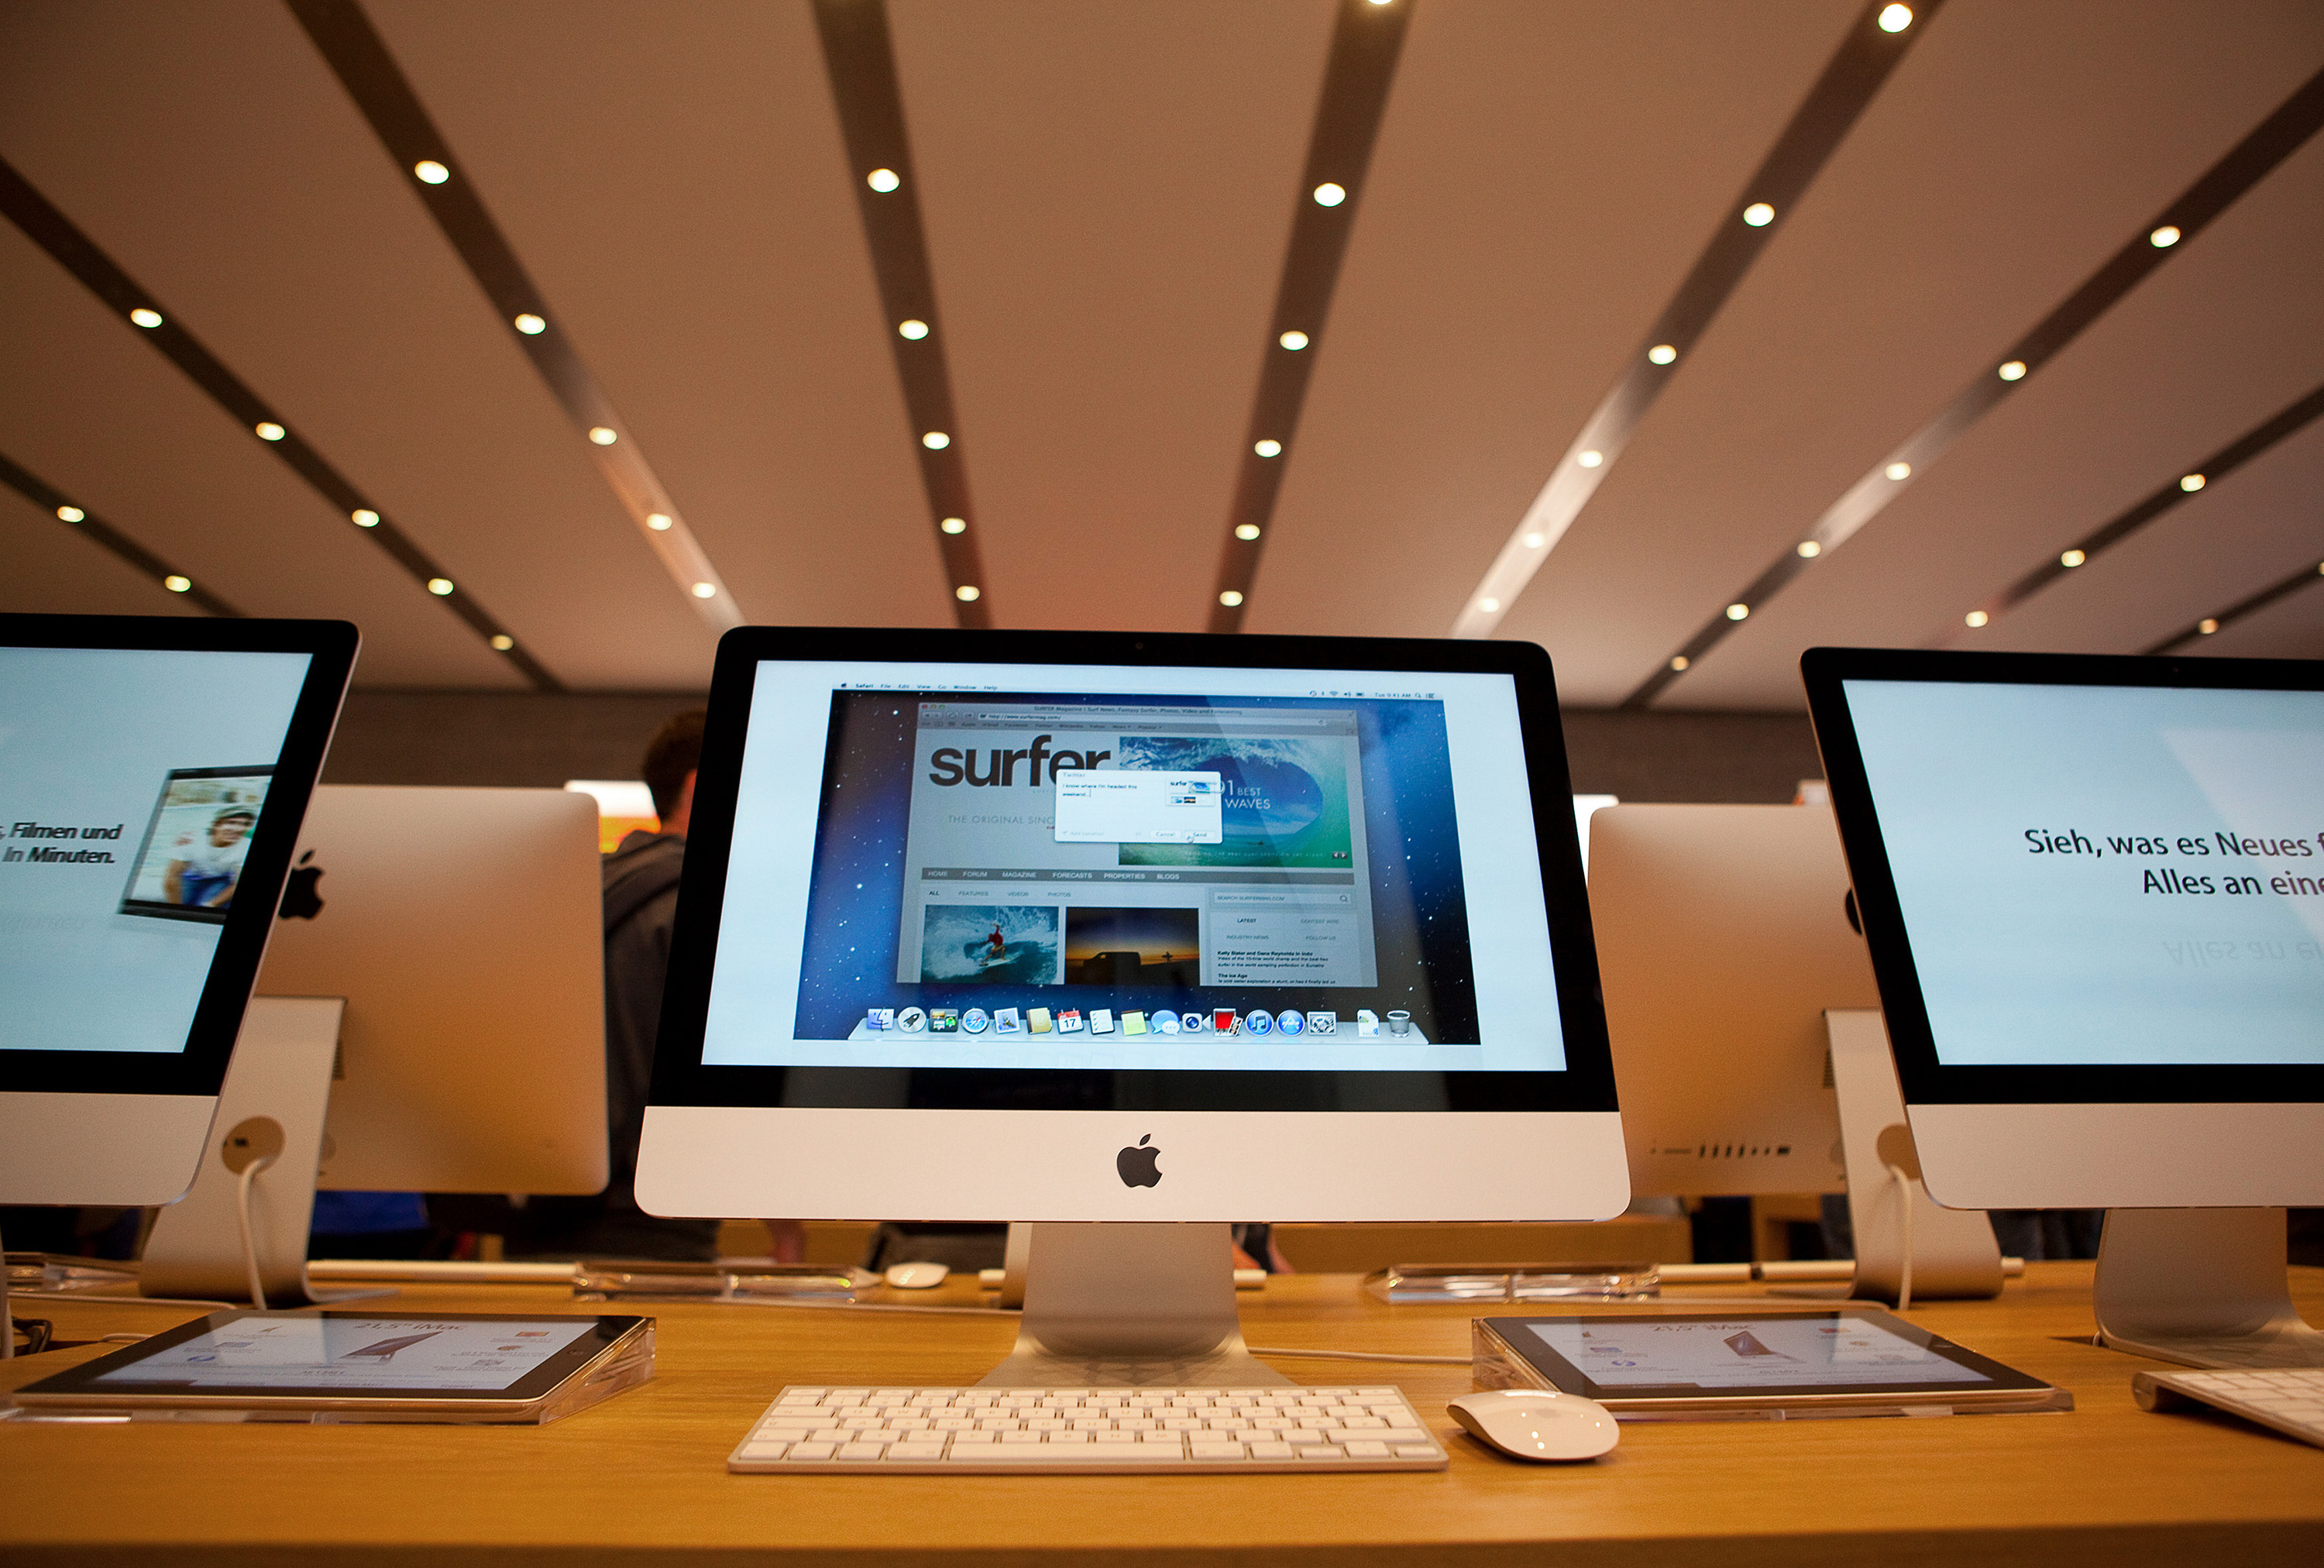 Apple Inc. iMac computers are seen on display at the new Apple Inc. store located on Kurfurstendamm Street in Berlin, Germany, on Friday, May 3, 2013.